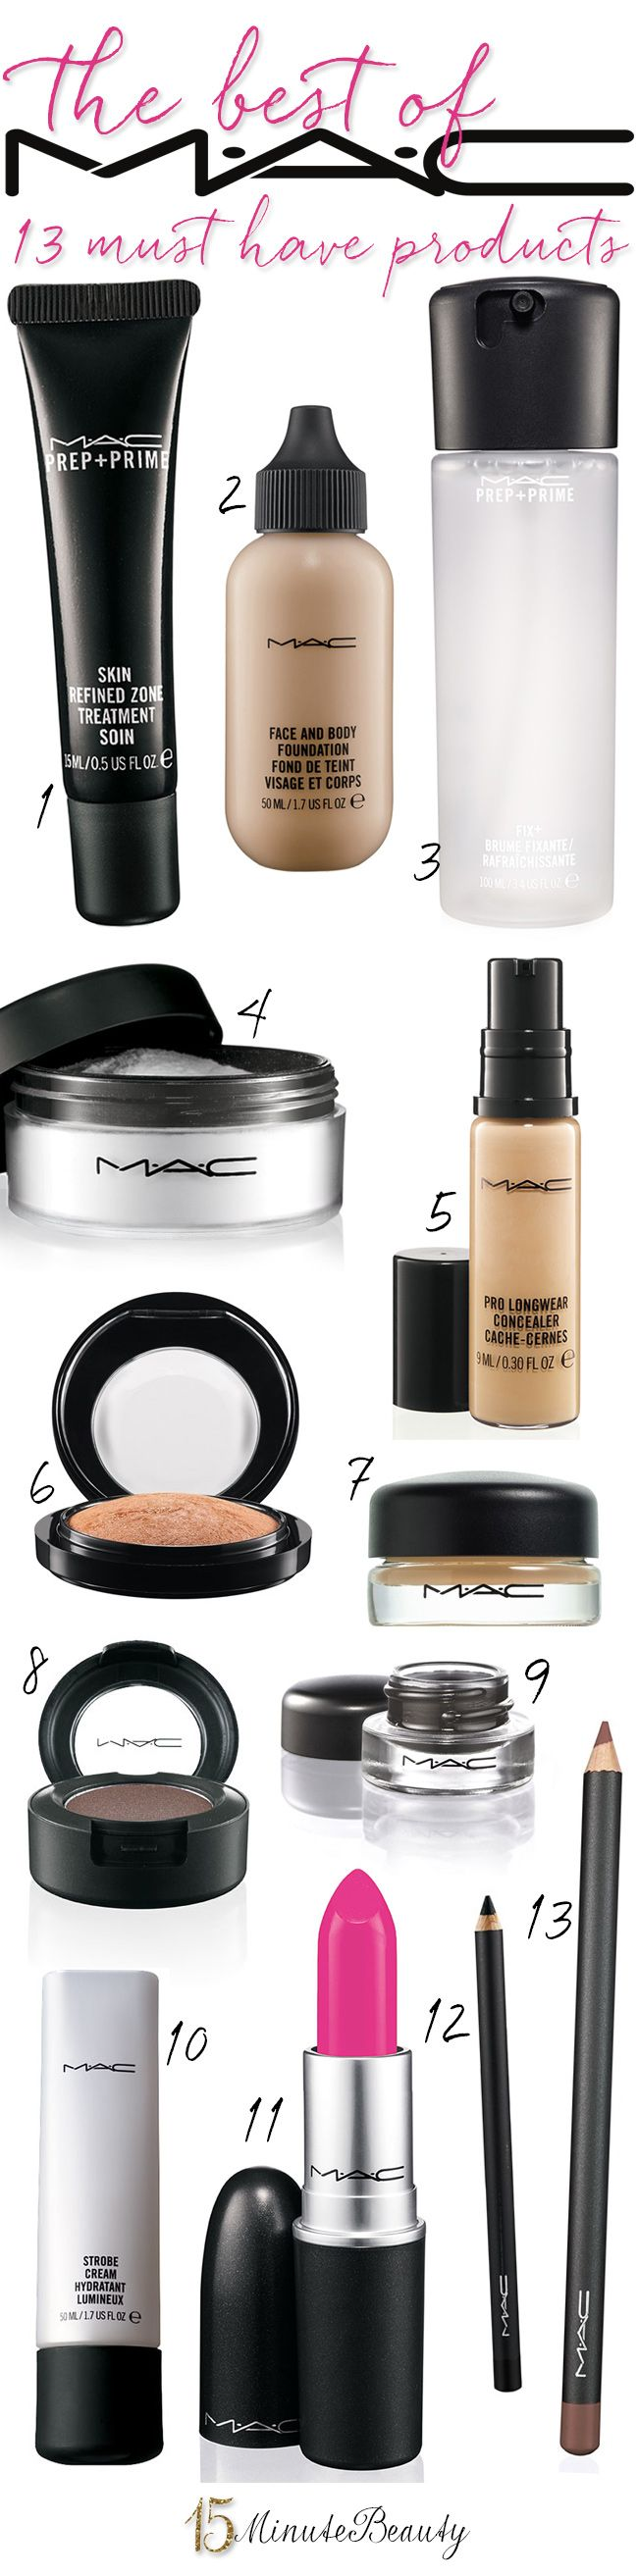 The Best of #MAC: The 13 #Makeup Products You Must Have! via @15minbeauty